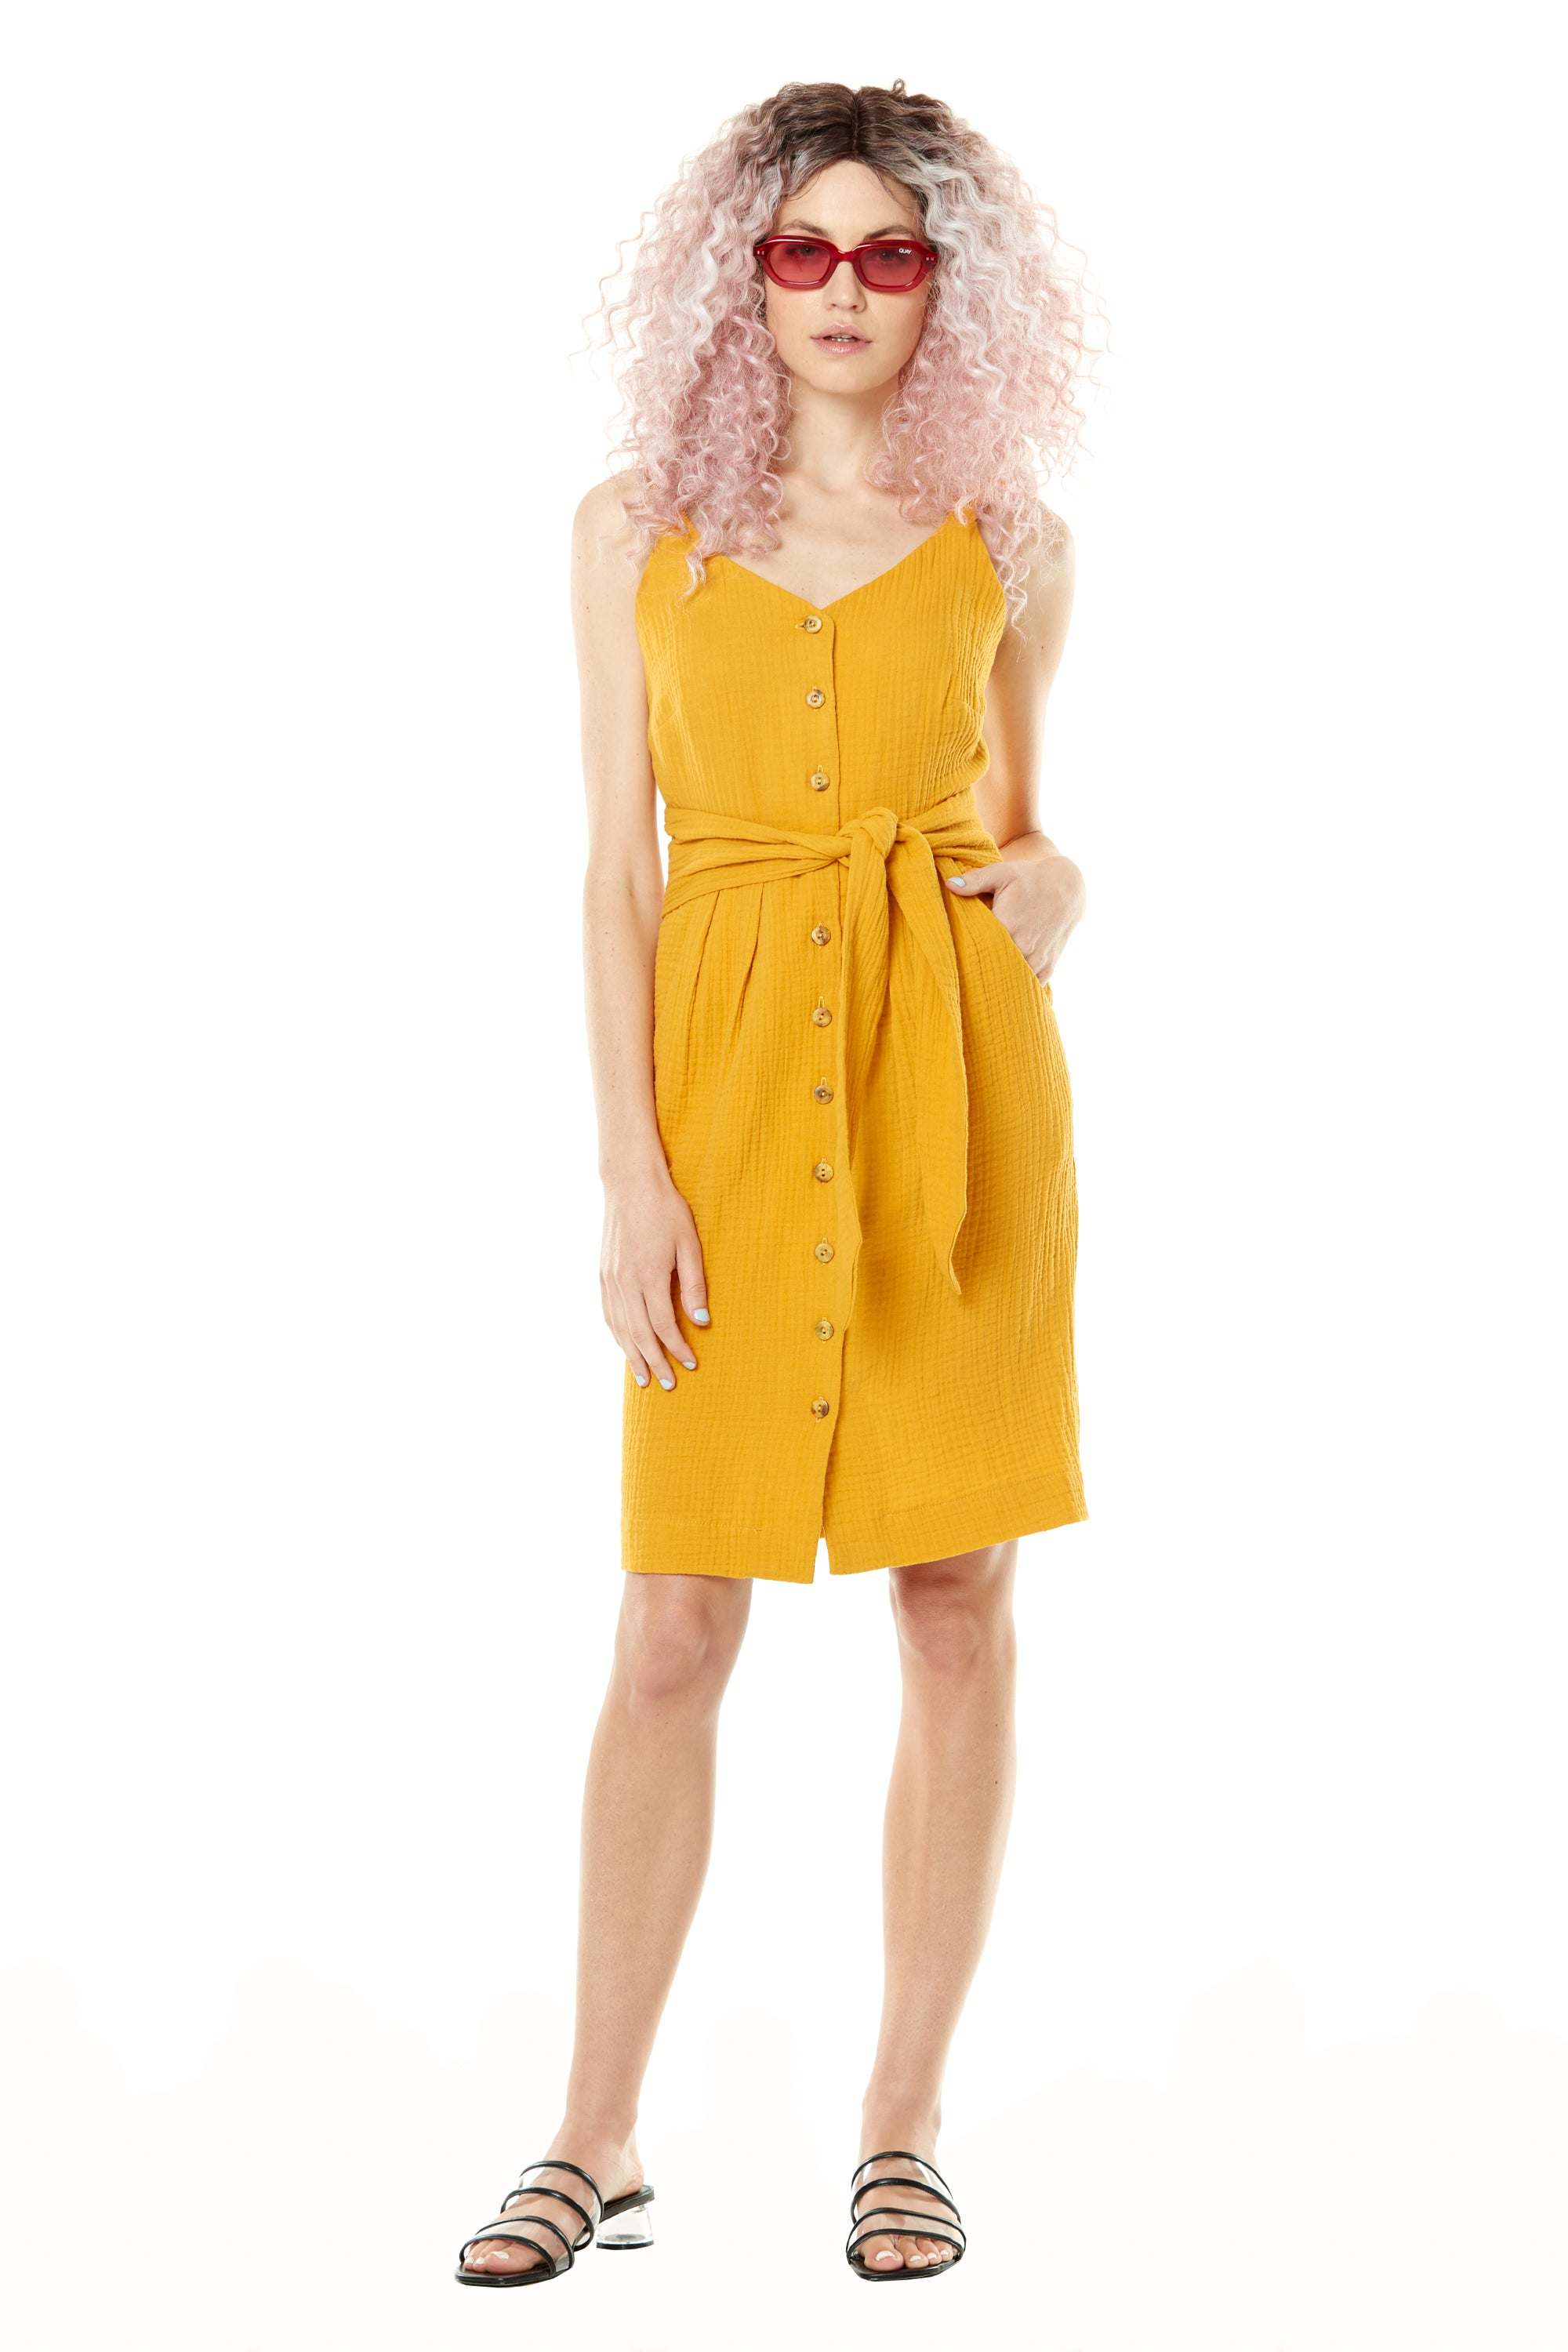 Chamallow Dress by Annie 50, Yellow, adjustable spaghetti straps, V-neck, button front, attached wide belt, cotton crepe, sizes XS to L, made in Quebec